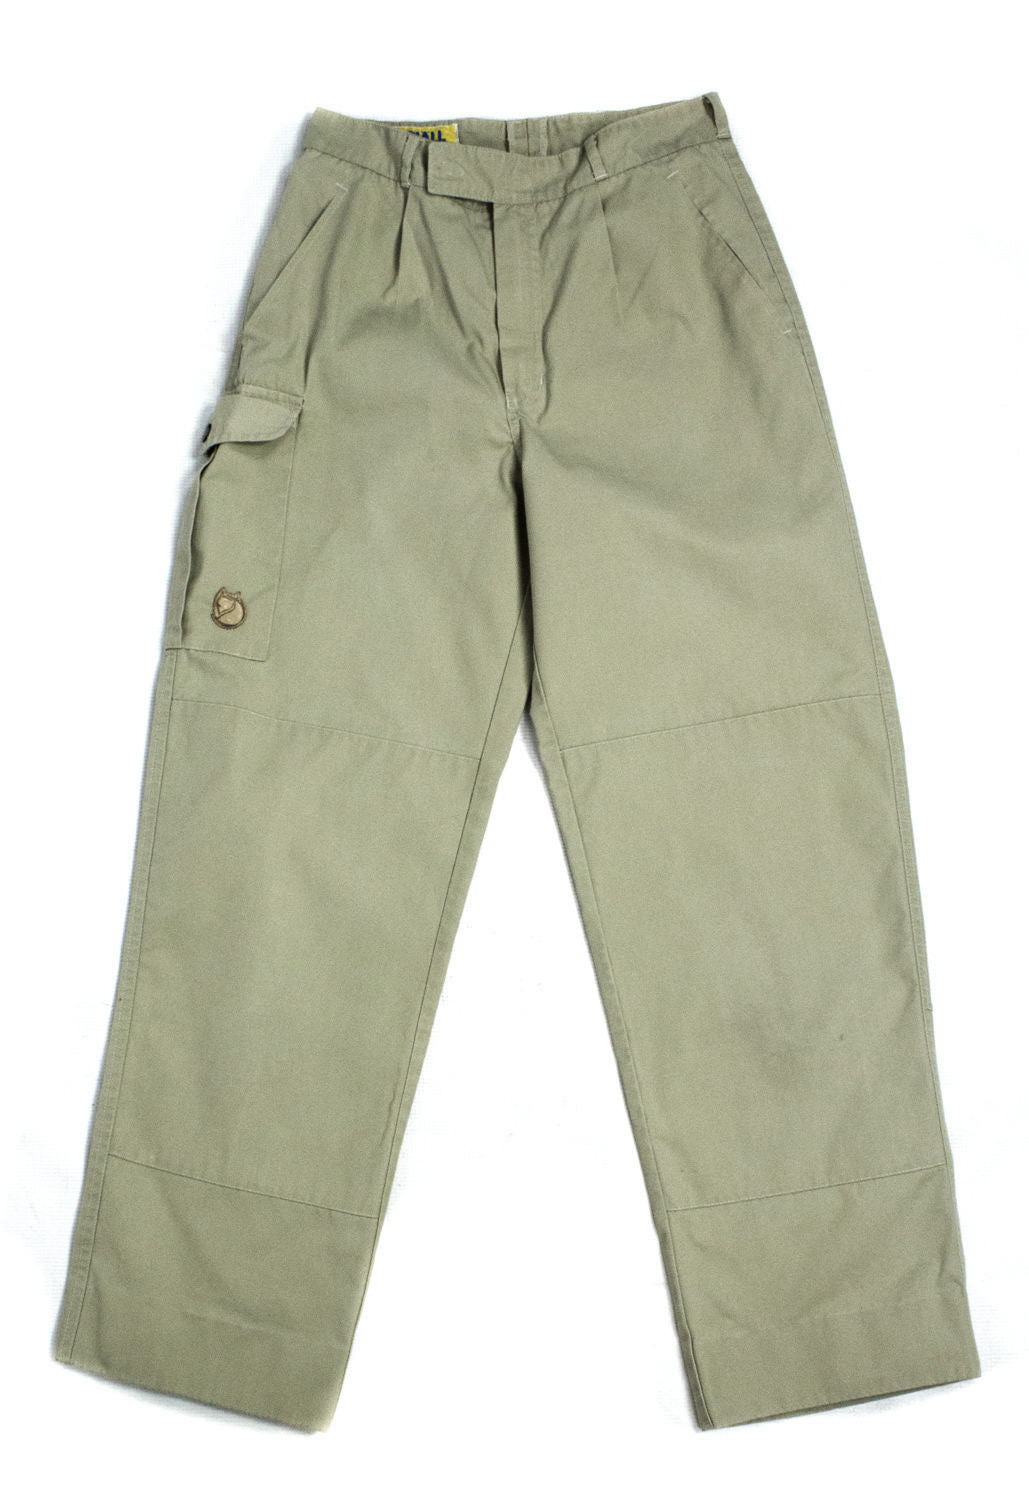 FJALLRAVEN Vintage Women's Khaki Hiking/Outdoor Pants, SIZE XS